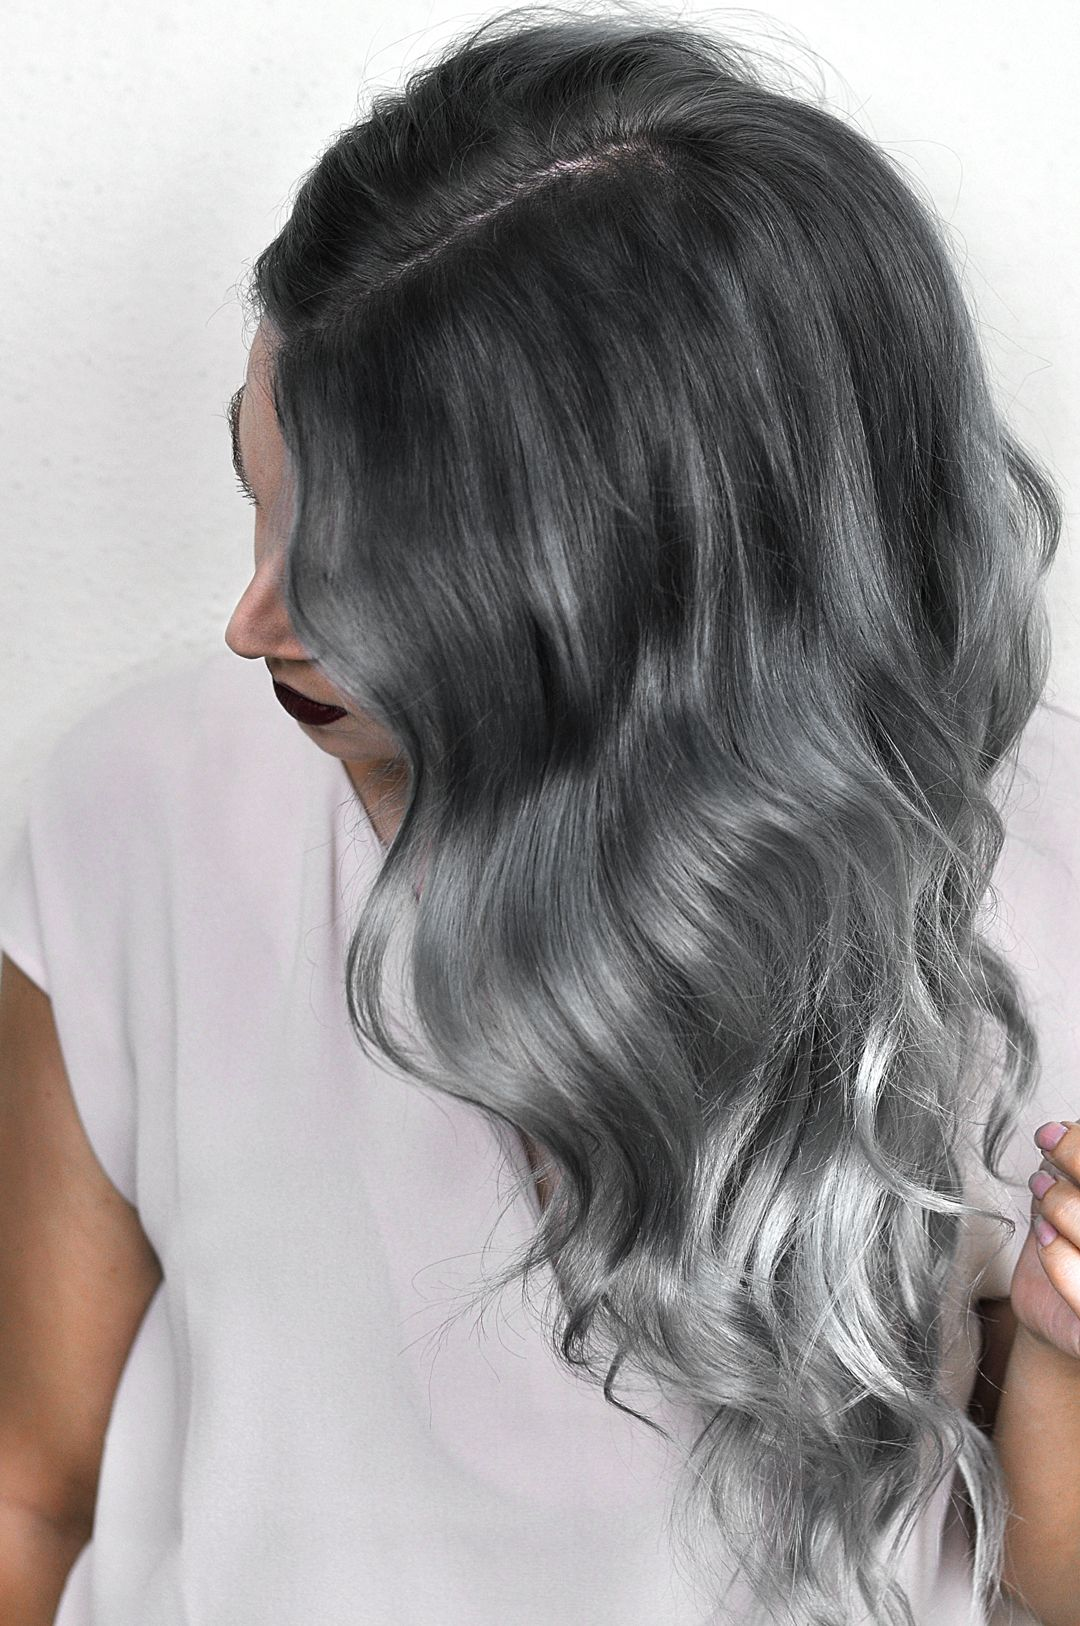 Silver Ombre Hair Dye Tutorial With Overtone Mayalamode Silver Ombre Hair Overtone Hair Color White Ombre Hair